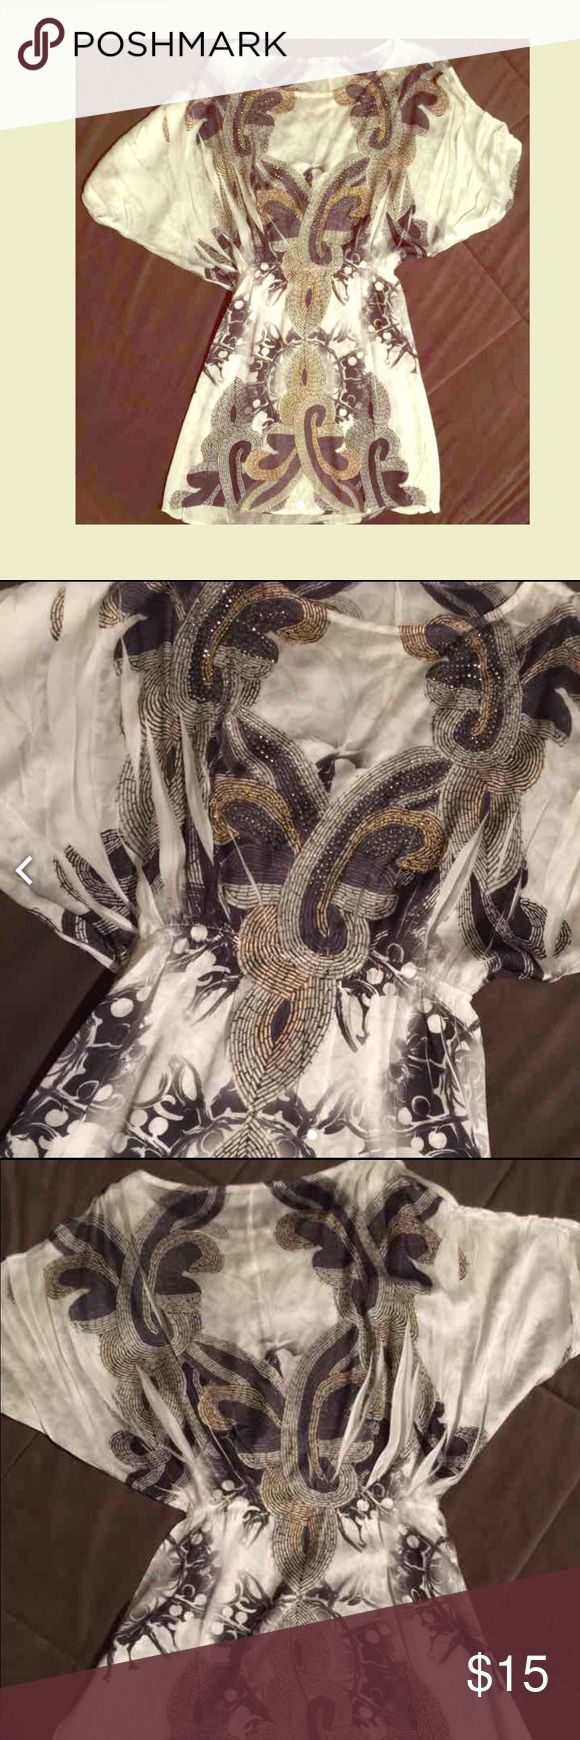 ✨White Multi Colored Dress✨ 🎀Gently used White Multi Color dress by Papaya. Size is a medium. Has beautiful design throughout the whole dress. Light material. Great for going out in. Only worn this dress once🎀 Papaya Dresses Midi